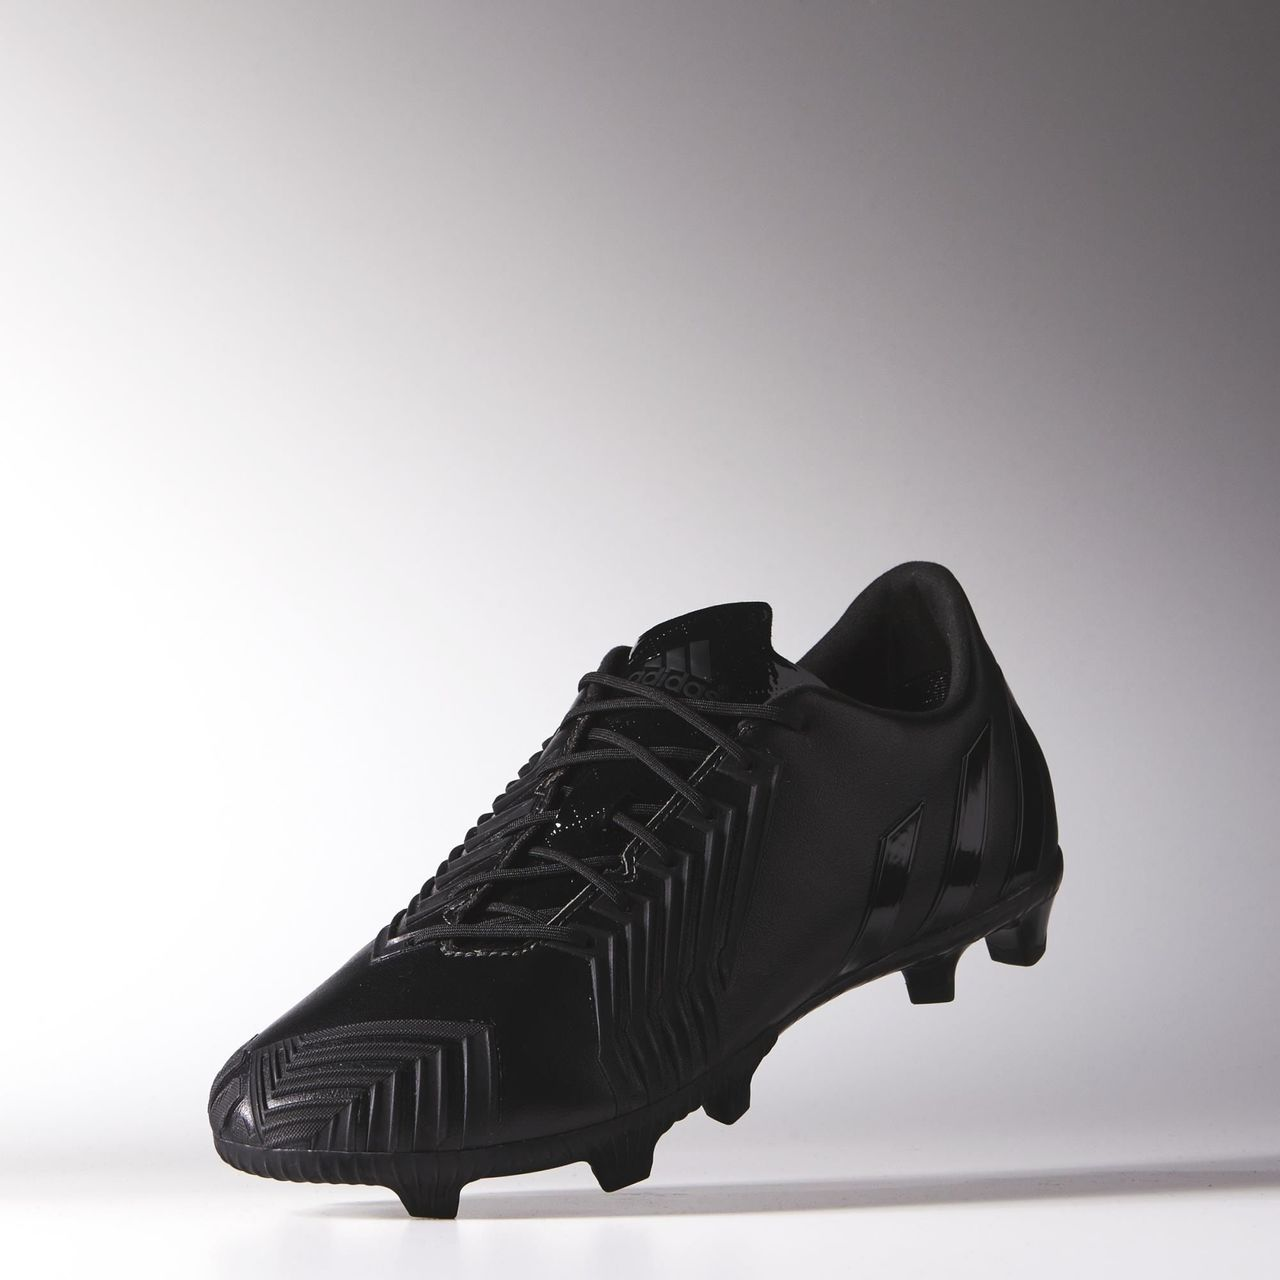 21168e378818 ... click to enlarge image adidas predator instinct knight pack core